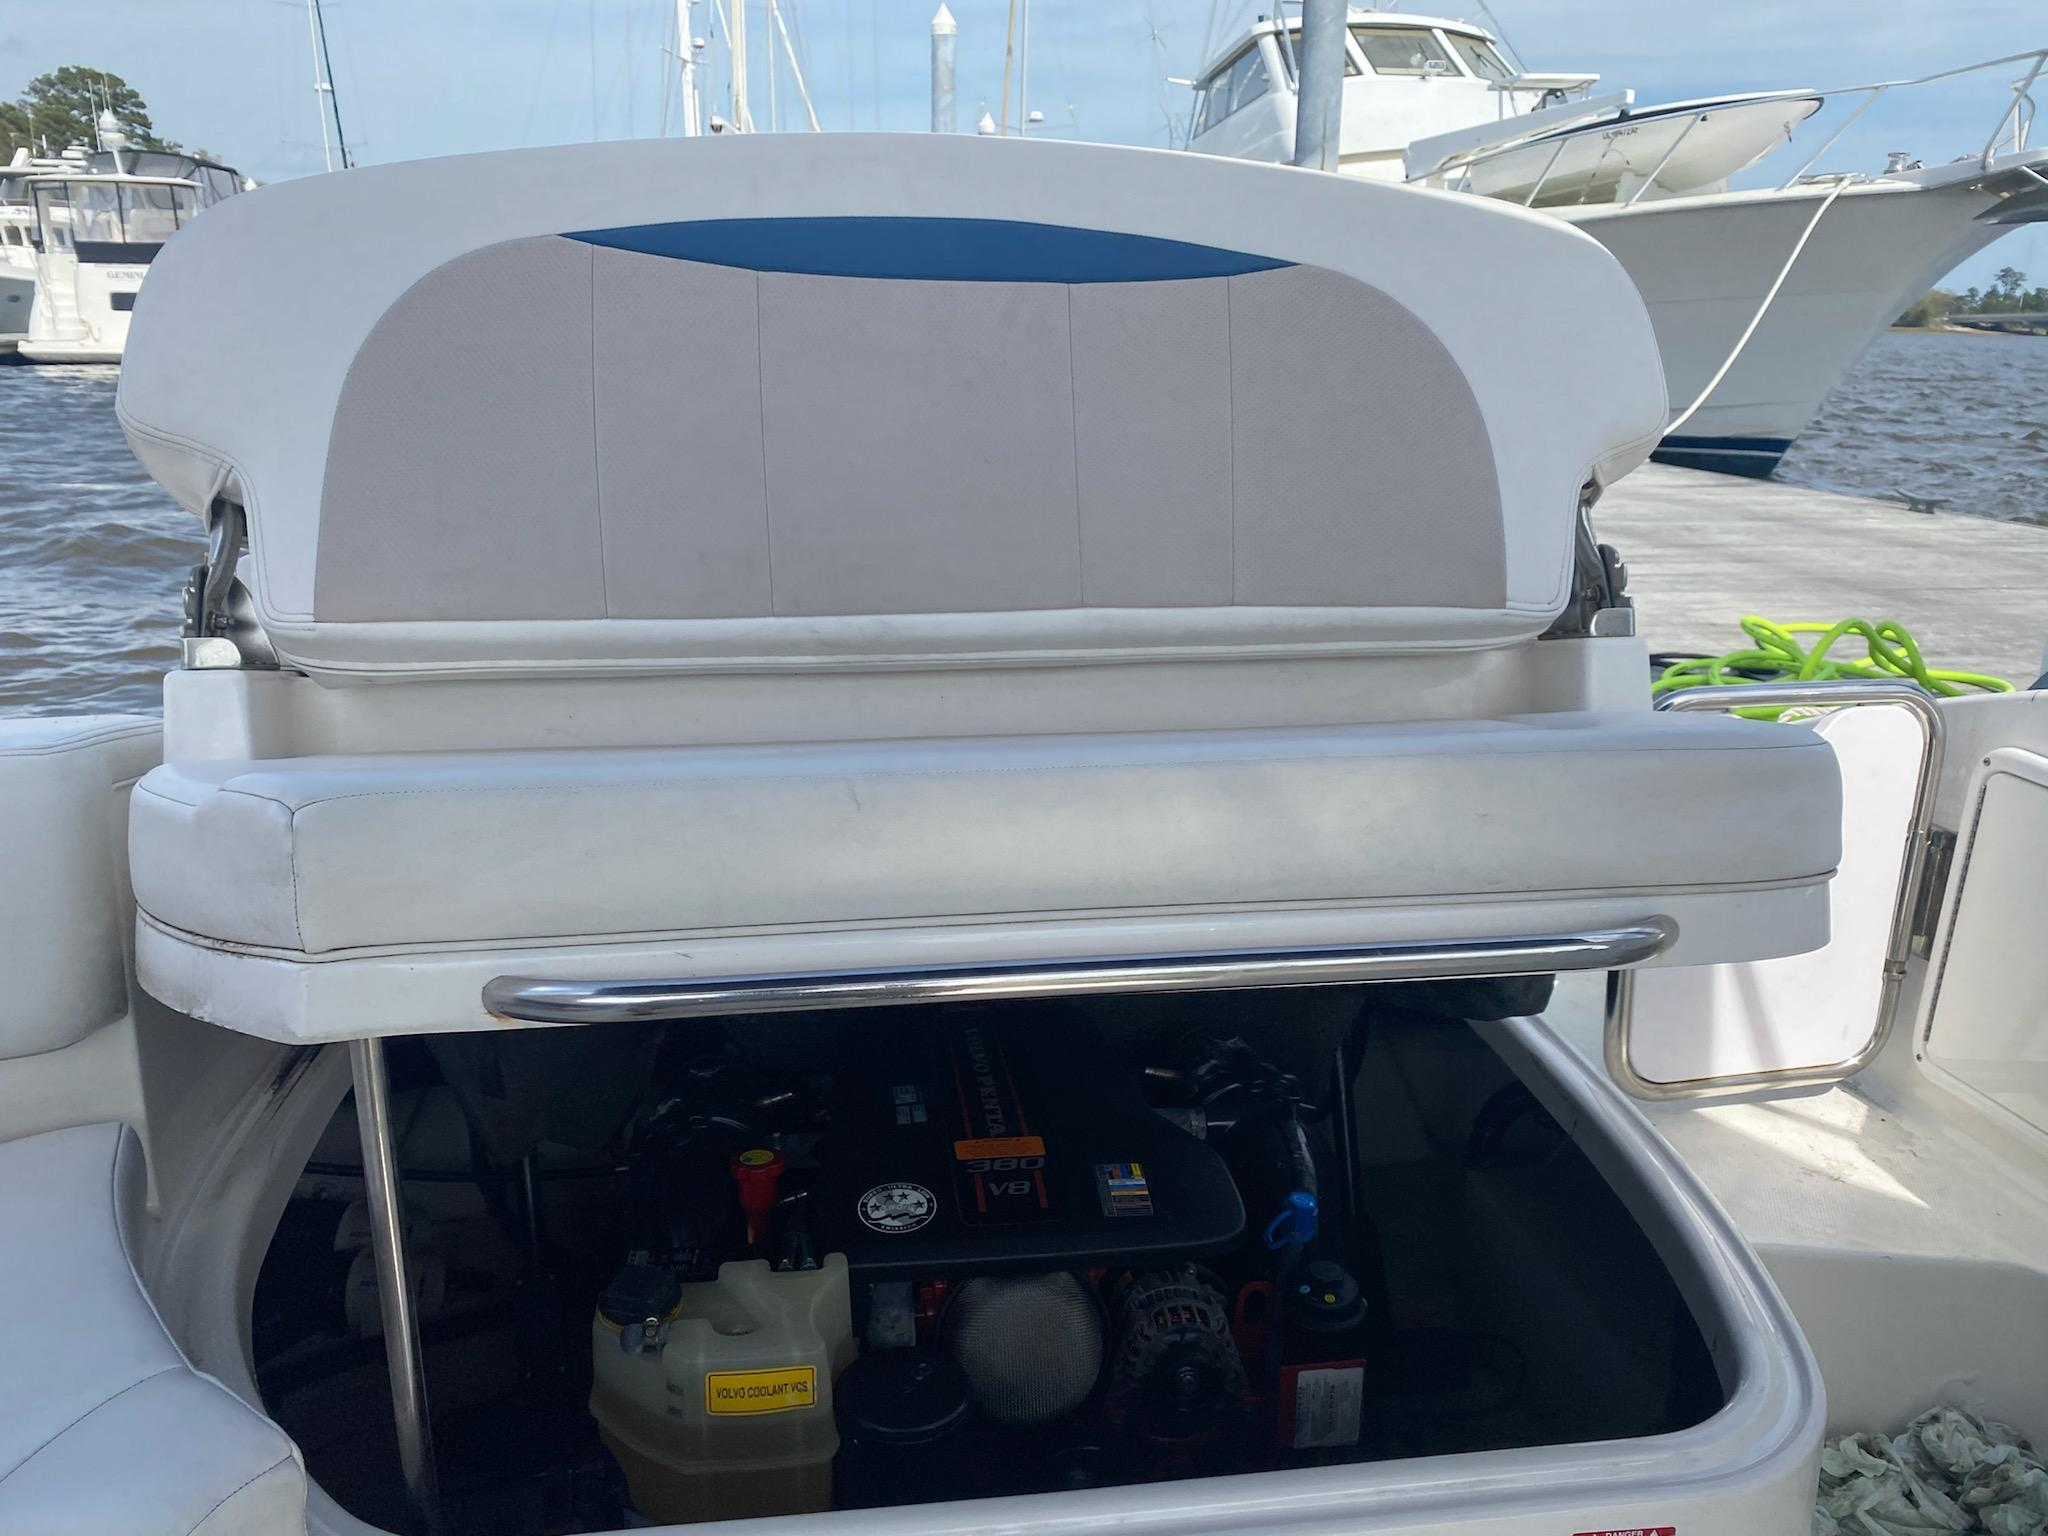 SC 5983 EE Knot 10 Yacht Sales